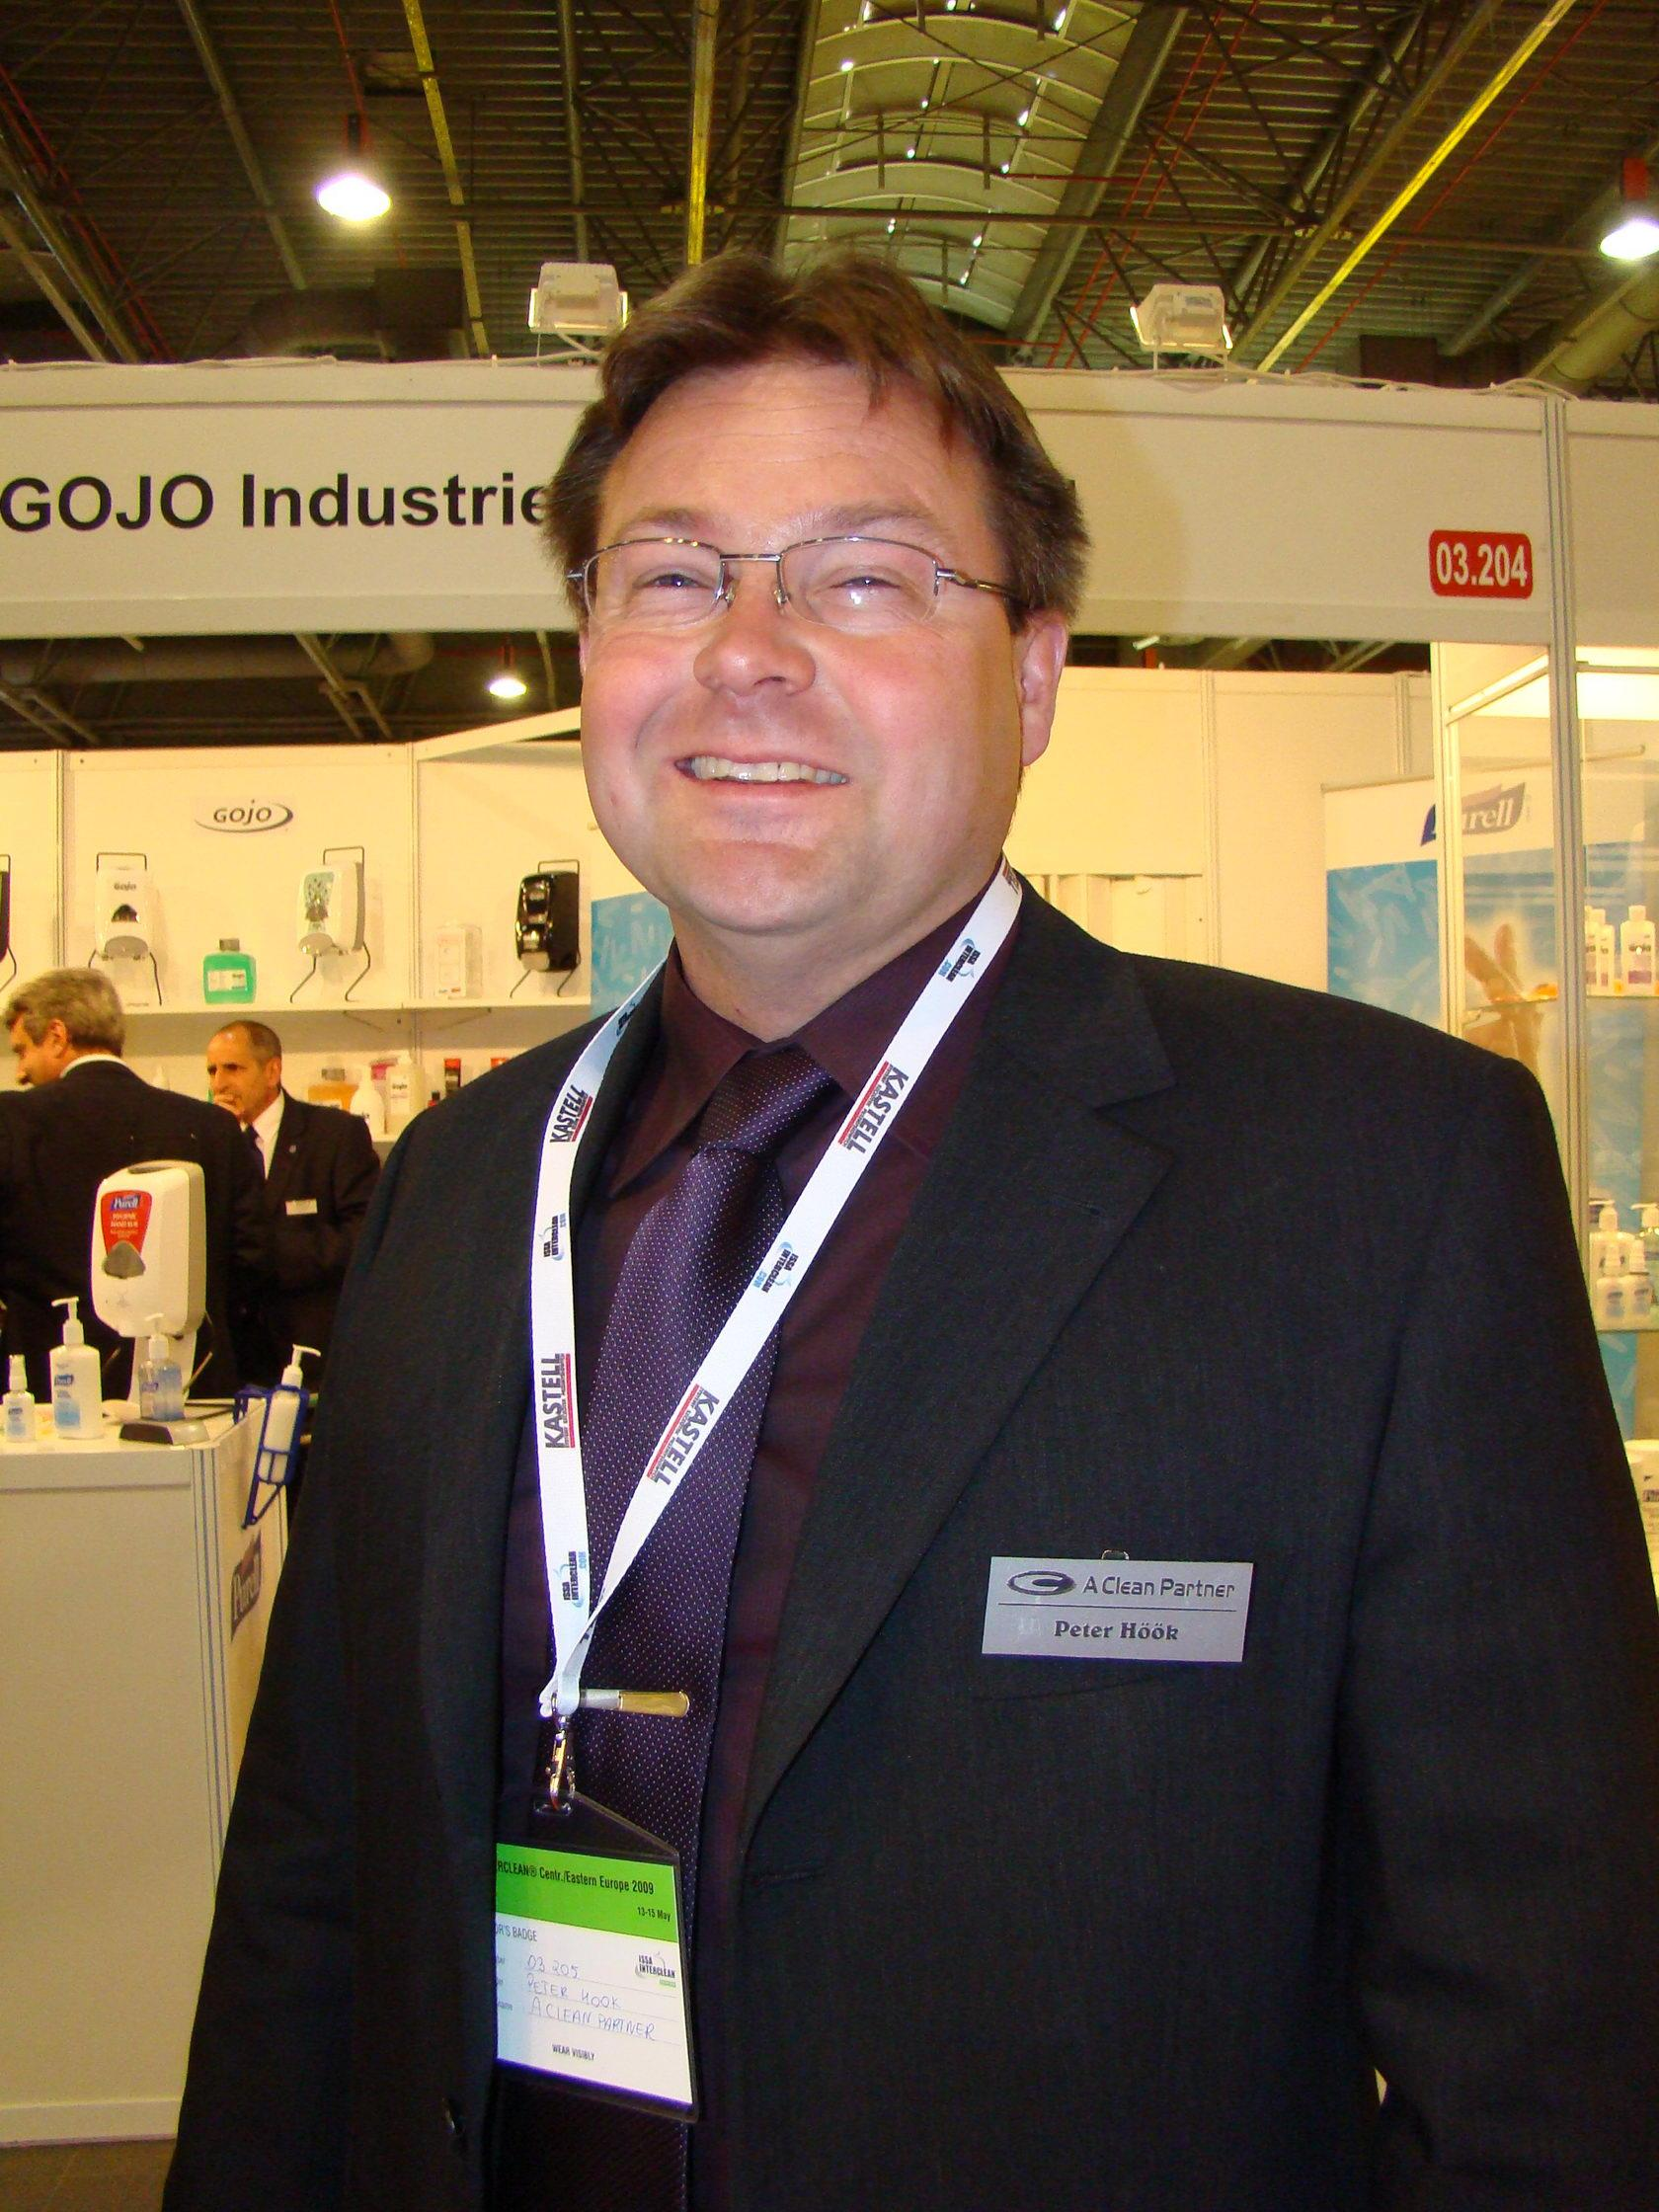 ISSA Interclean 2009 4 - Galeria